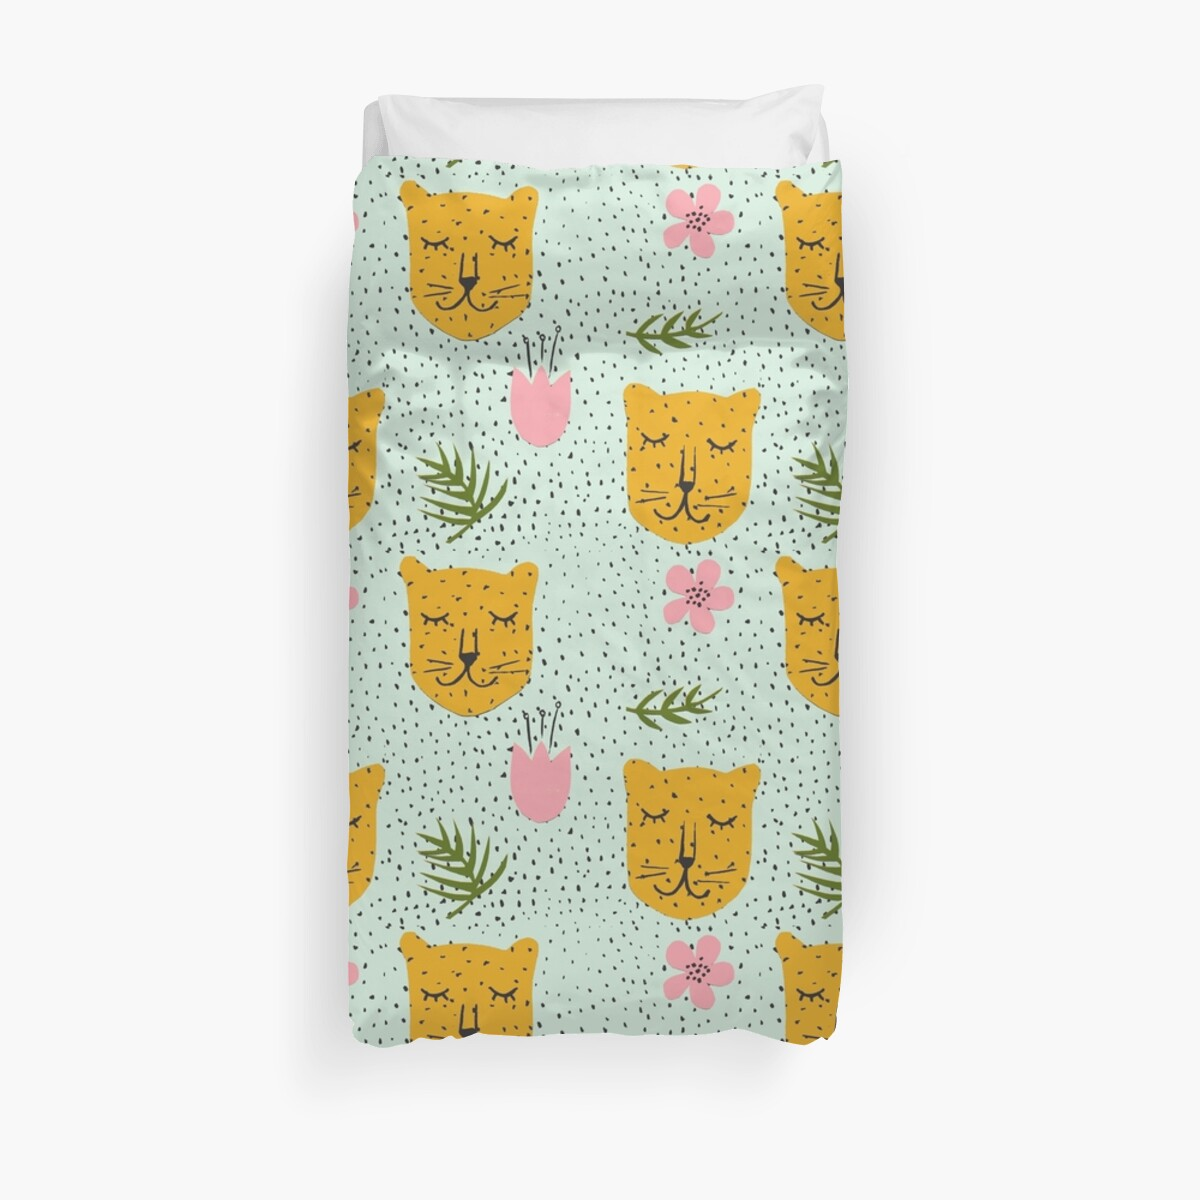 Spotty Wall Stickers Quot Spotty Leopards Quot Duvet Covers By Inesa Redbubble